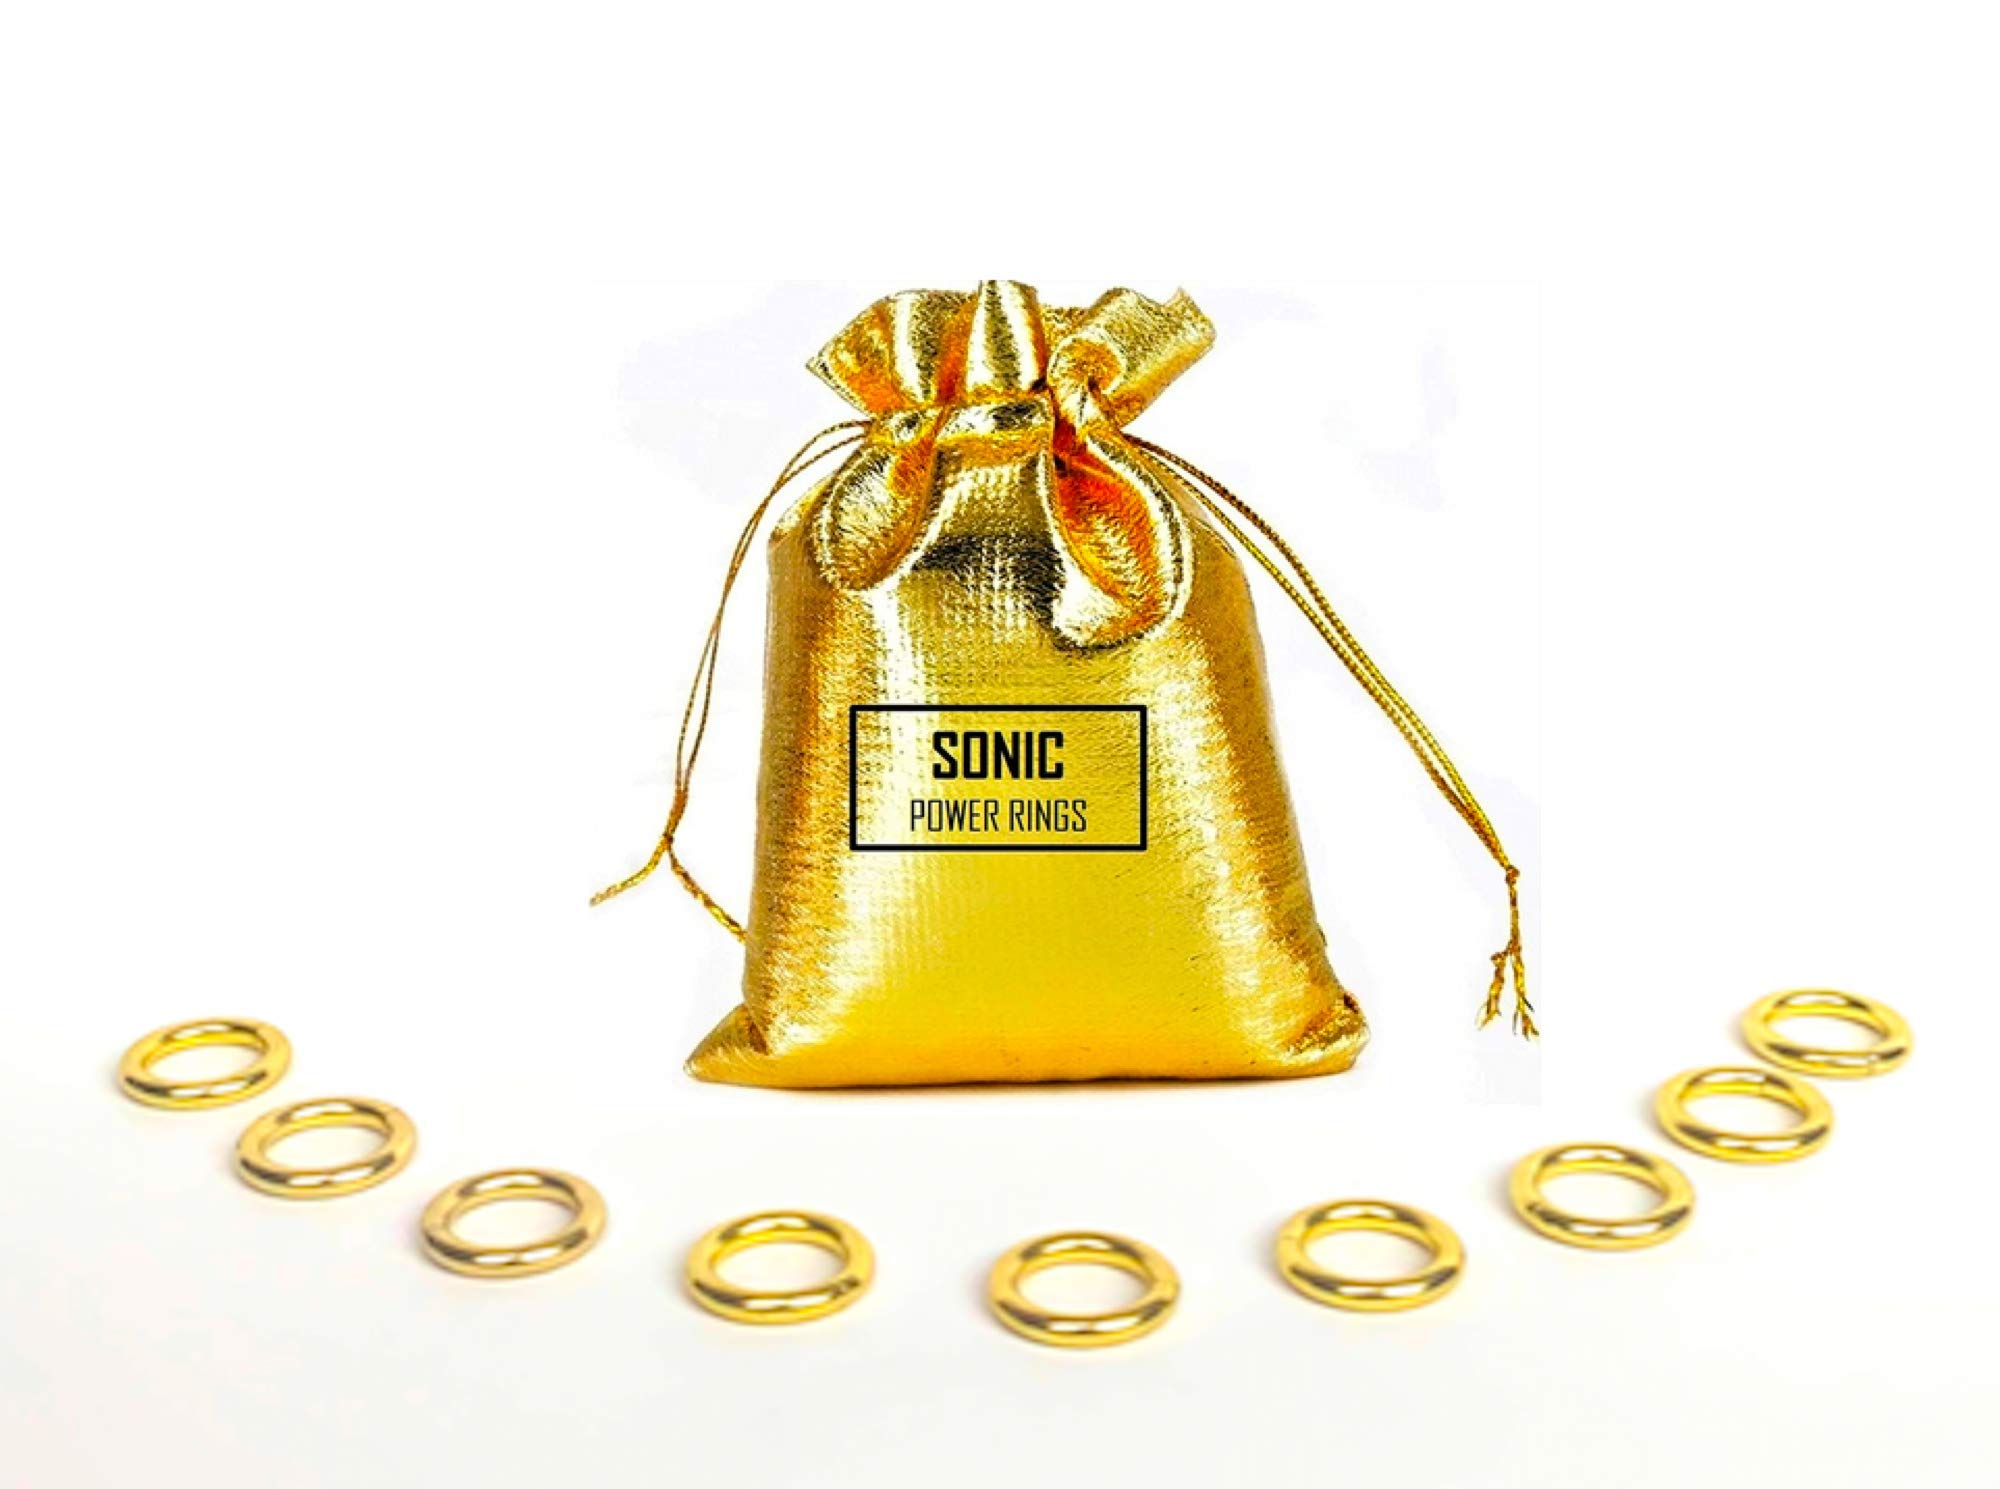 Toys Sonic - Gold 9 Mini Metal Power Rings - Game Figure Display - by AAA World